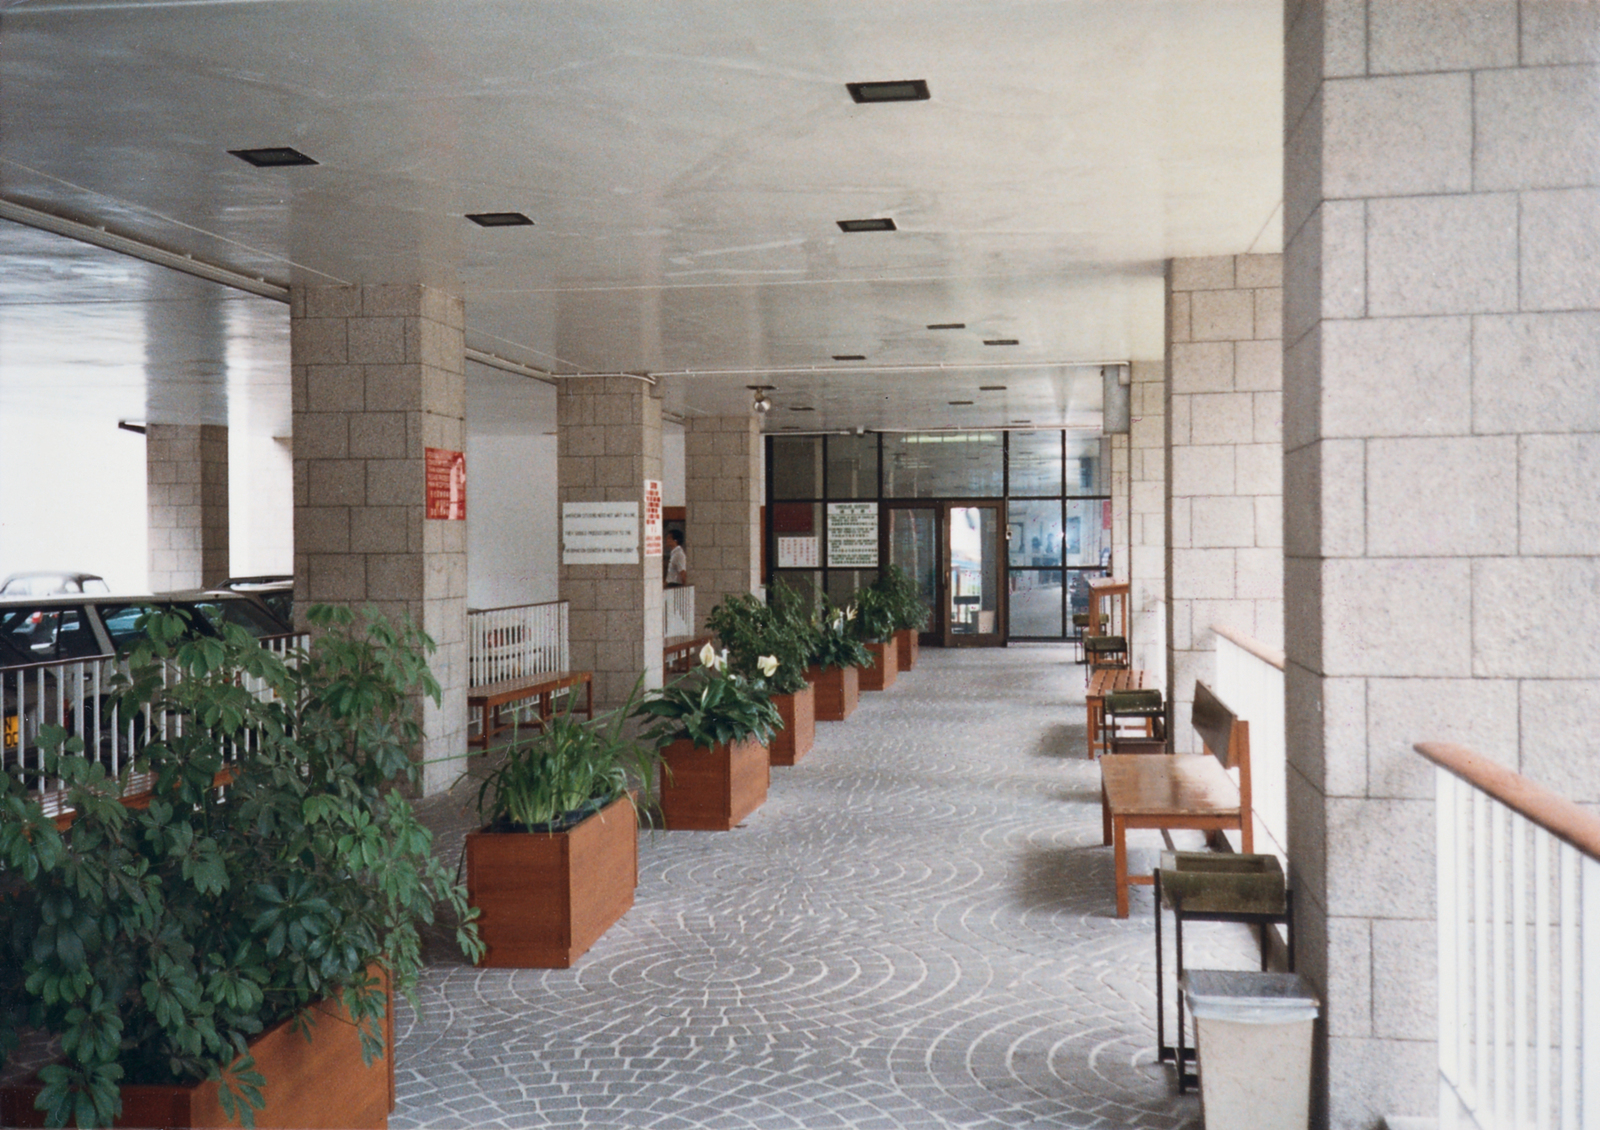 Hong Kong - Chancery Office Building - 1980